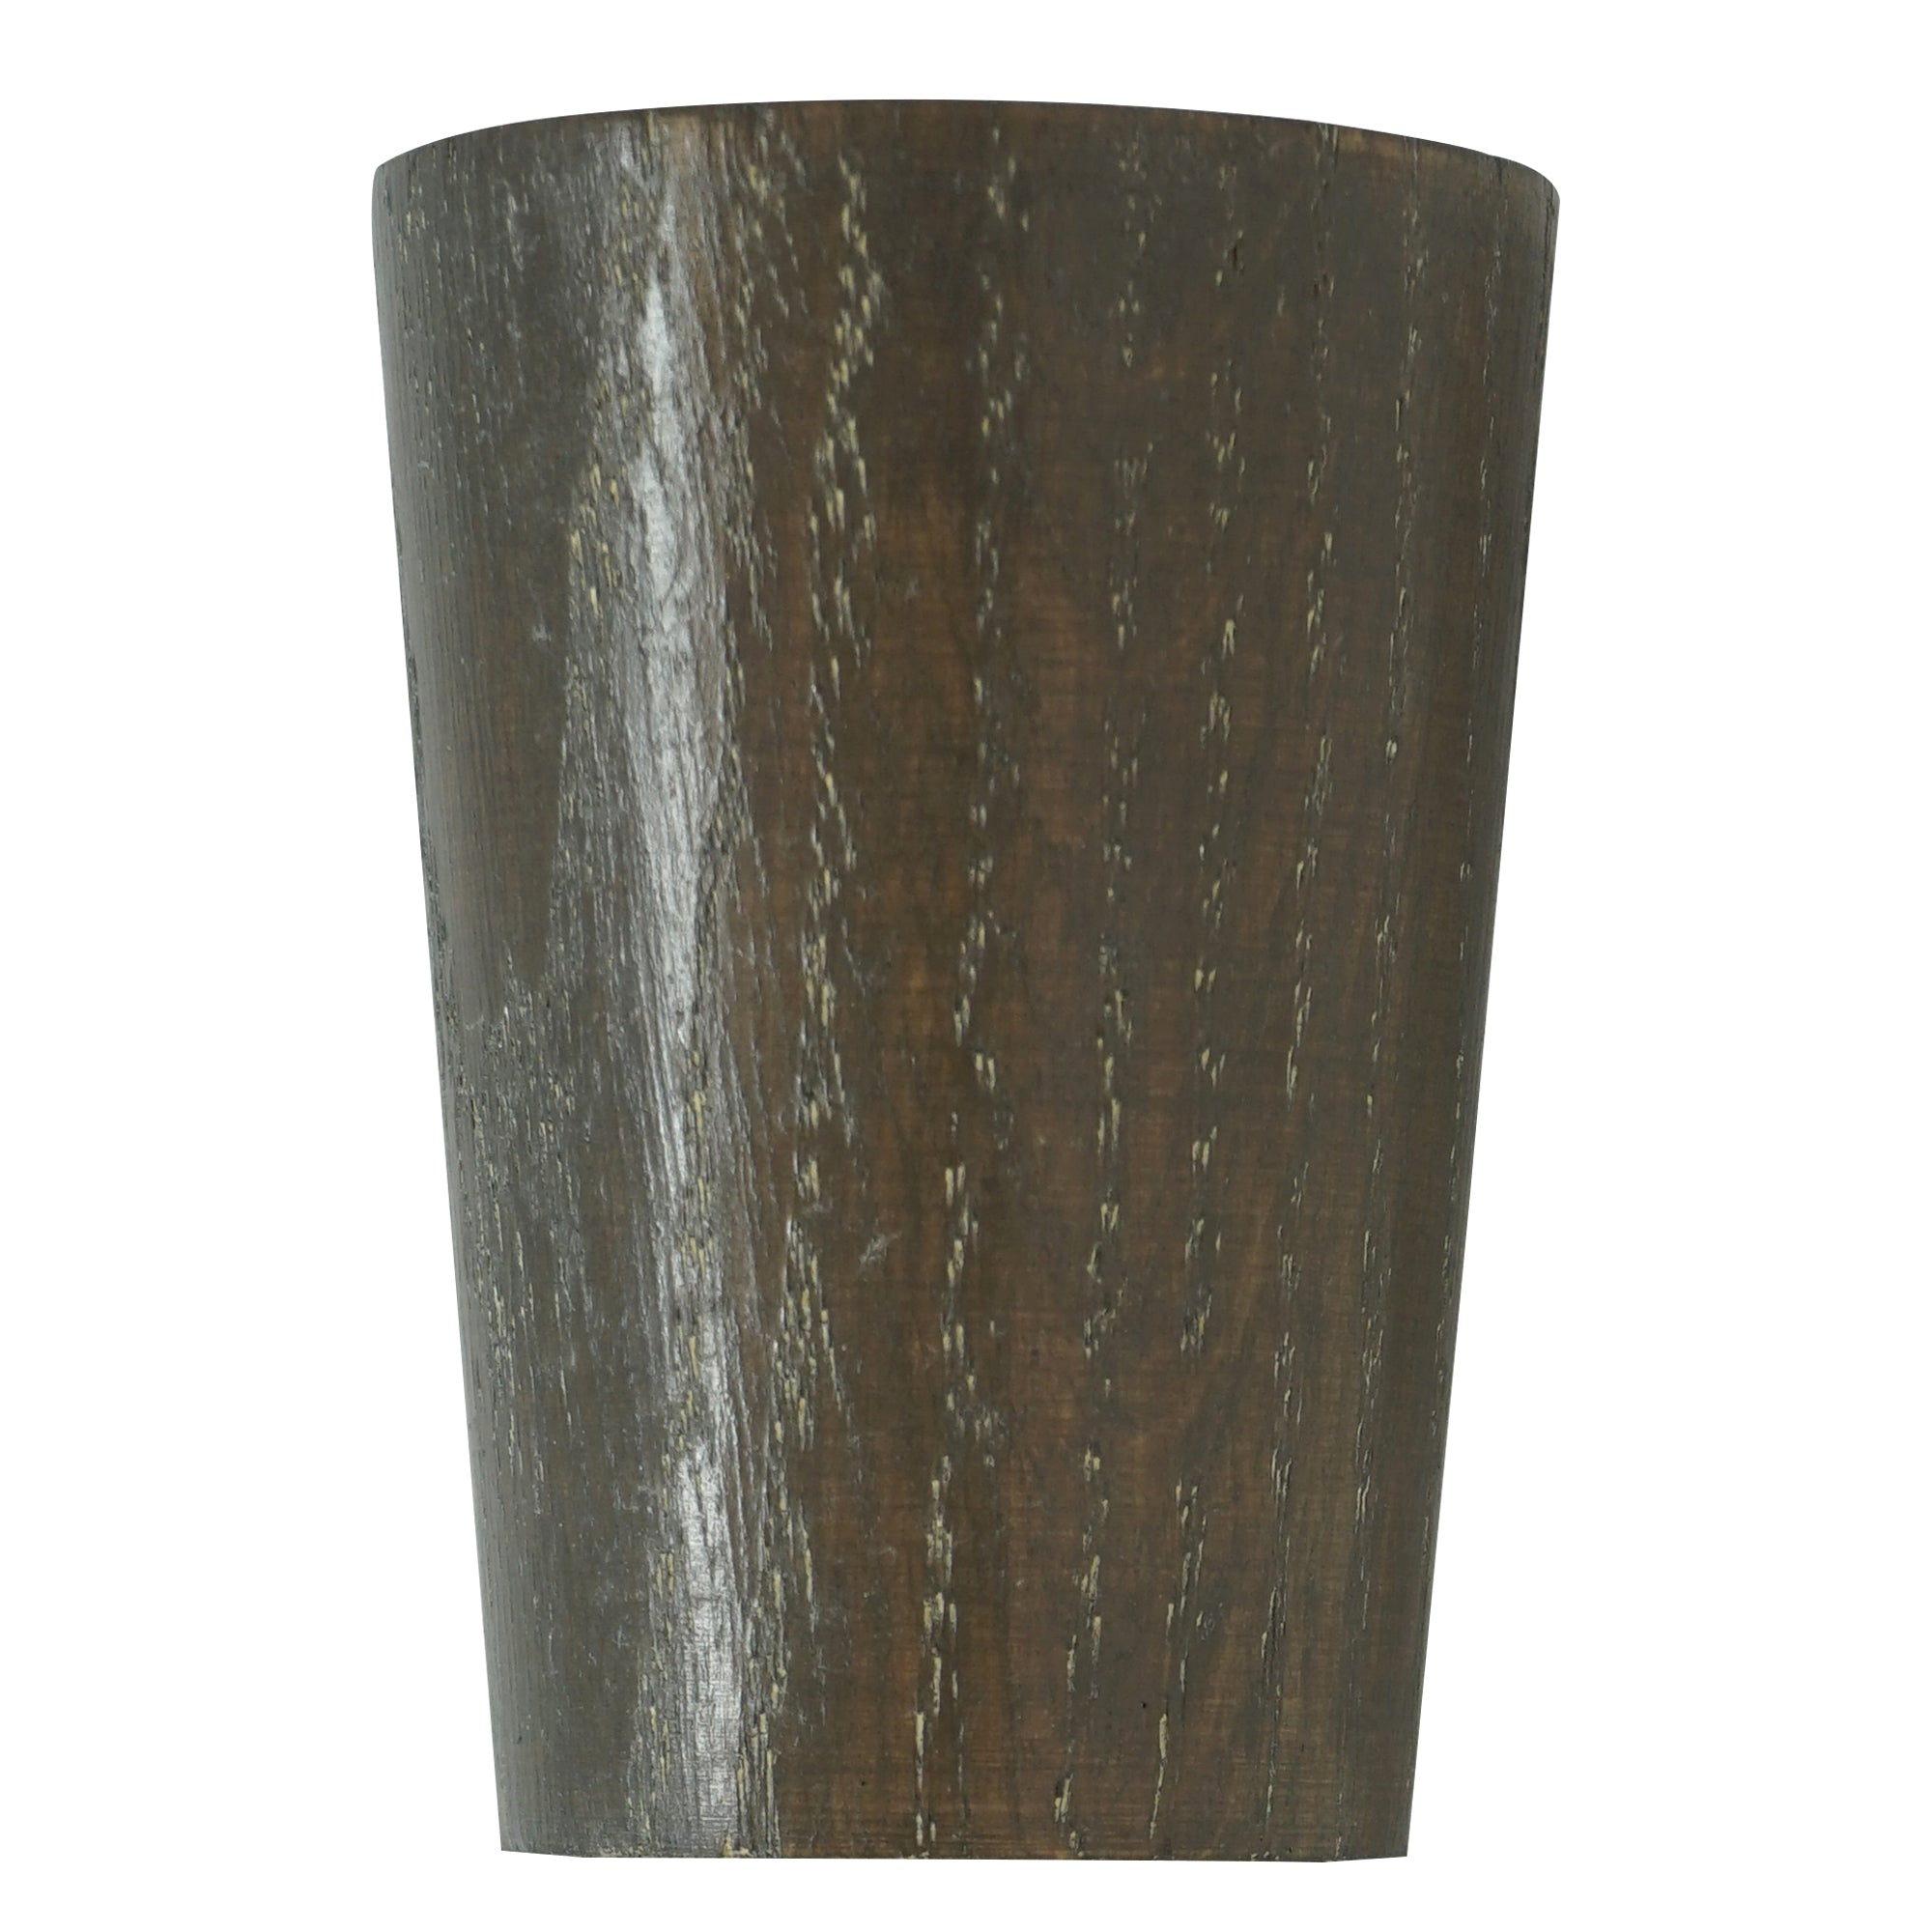 Wood Taper Finial - Smoke Finish